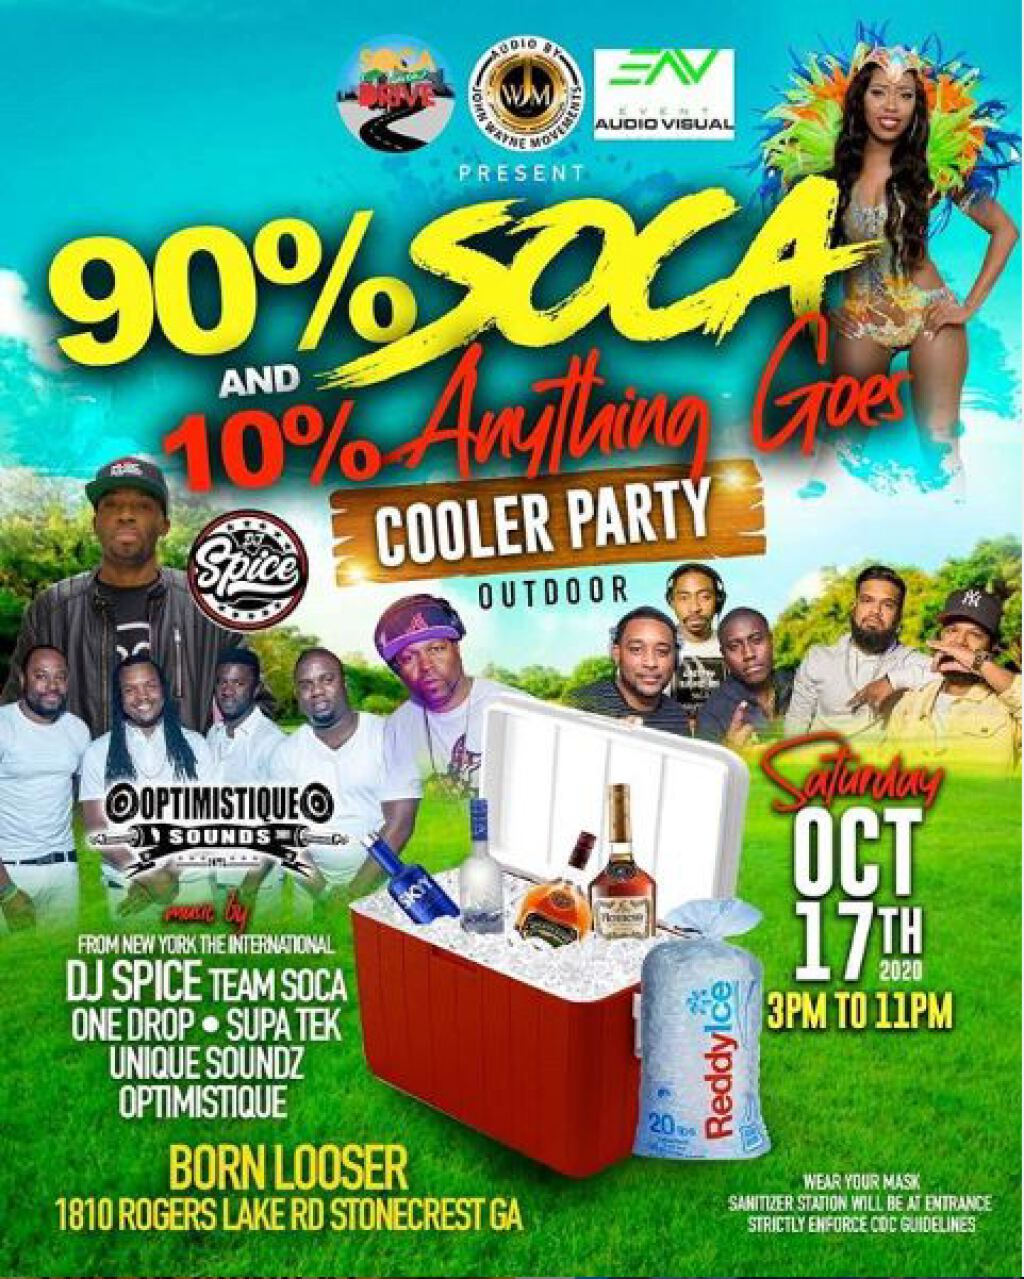 90% Soca 10% Anything Goes Cooler Party flyer or graphic.